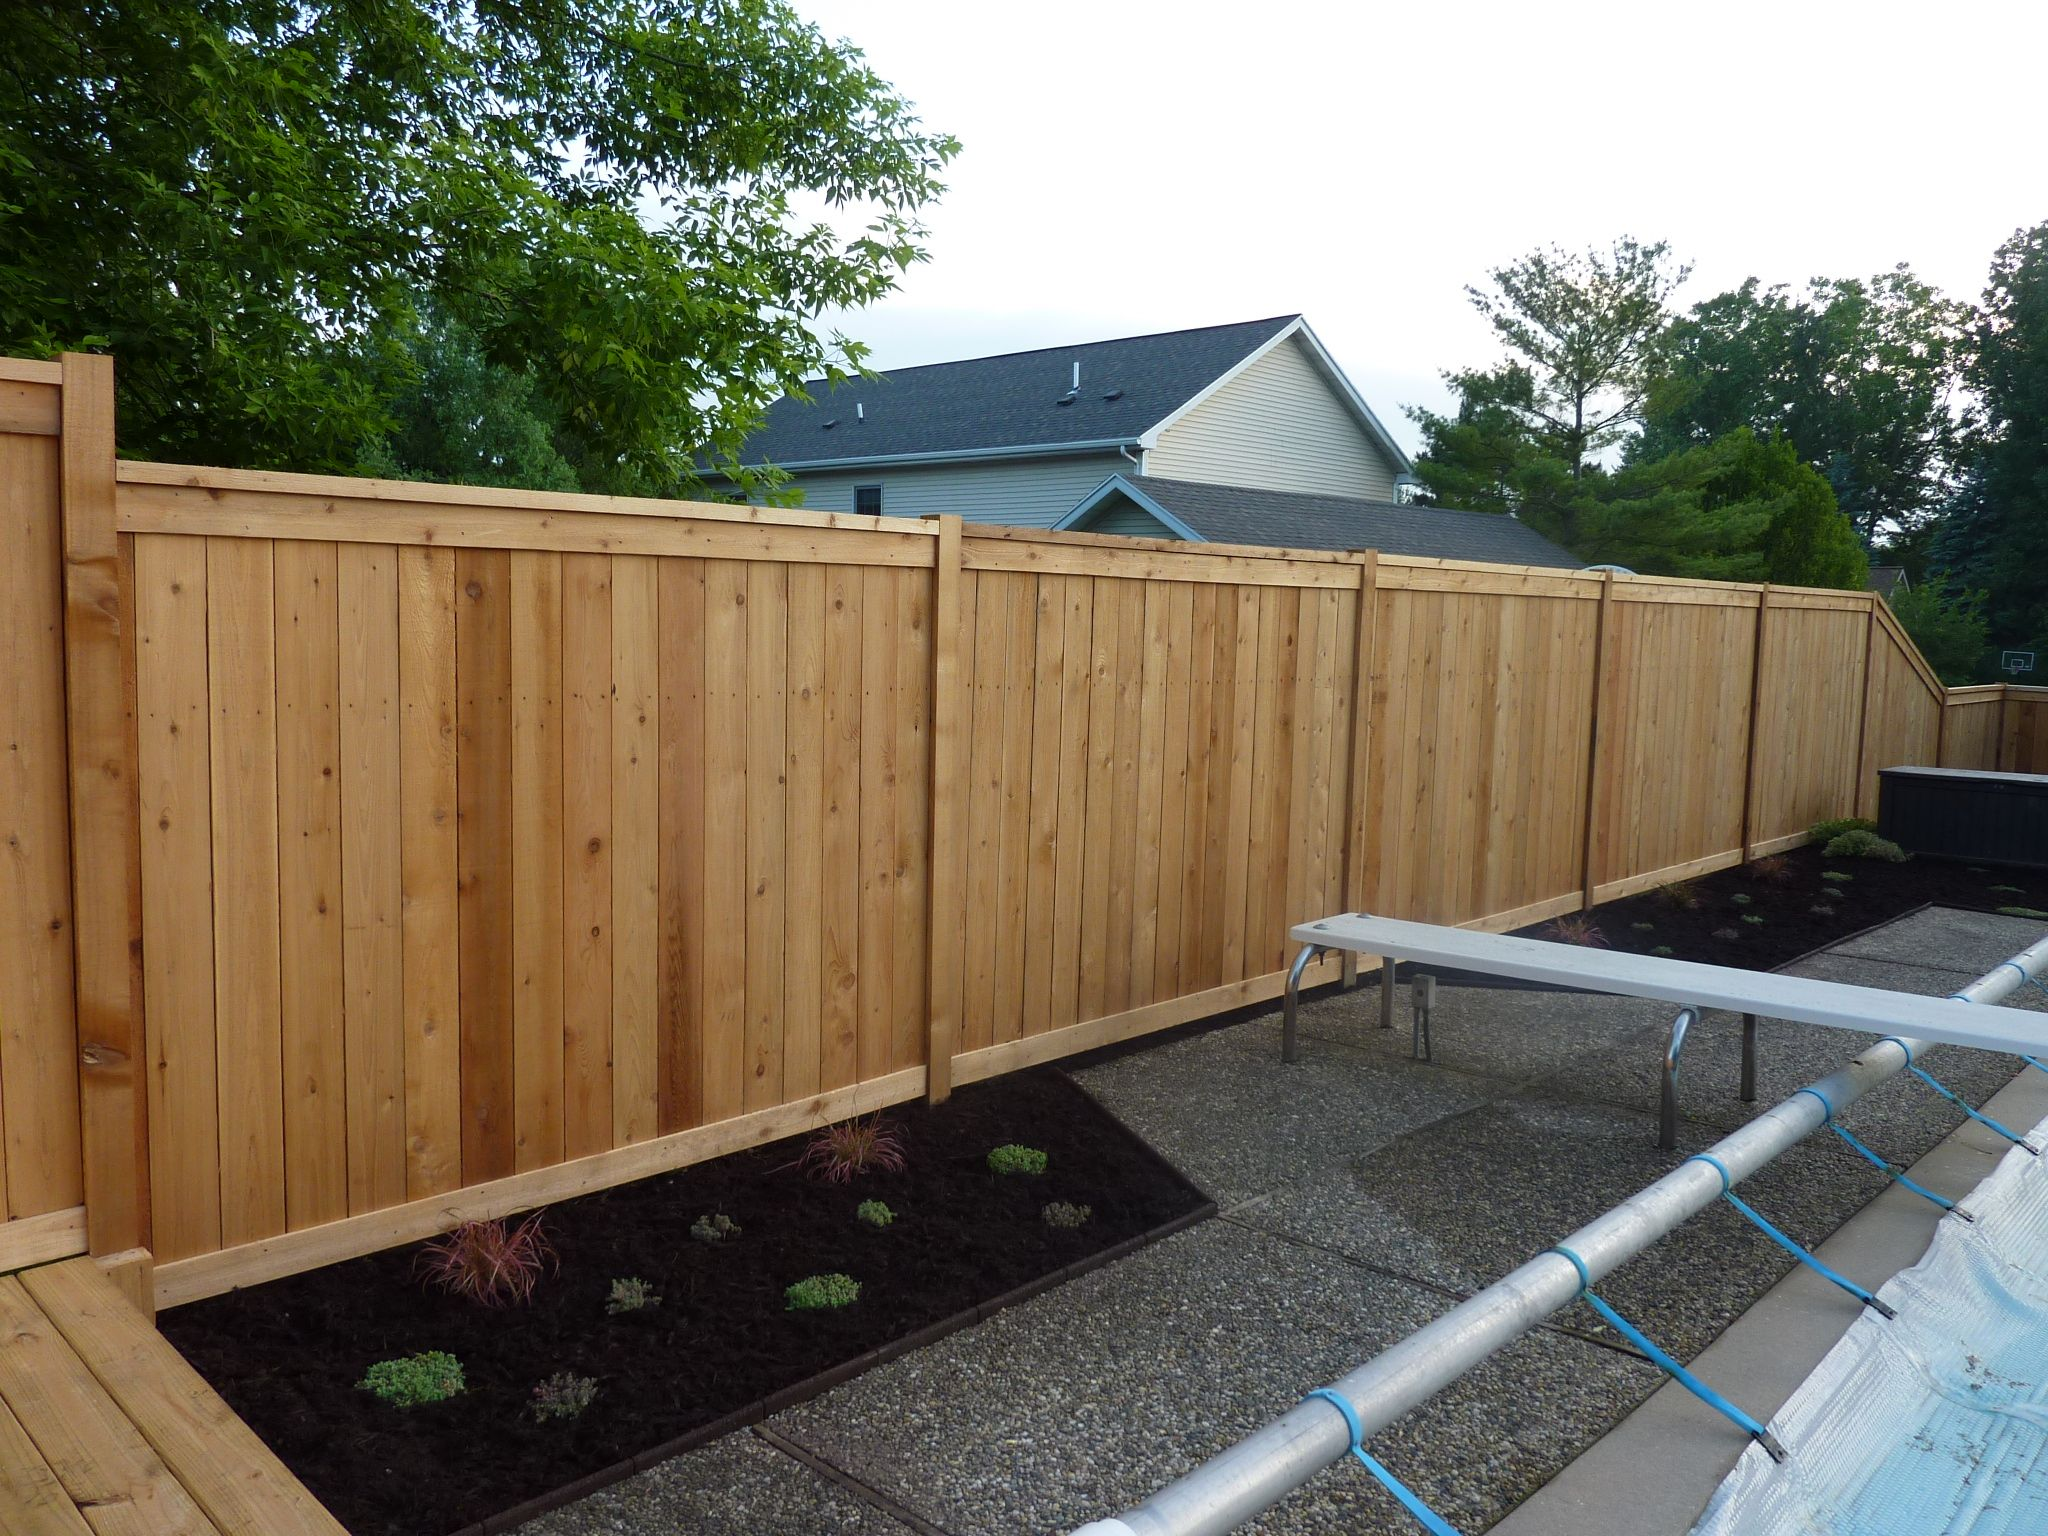 Custom Cedar Wood Privacy Fence Around Pool Built On Top Of